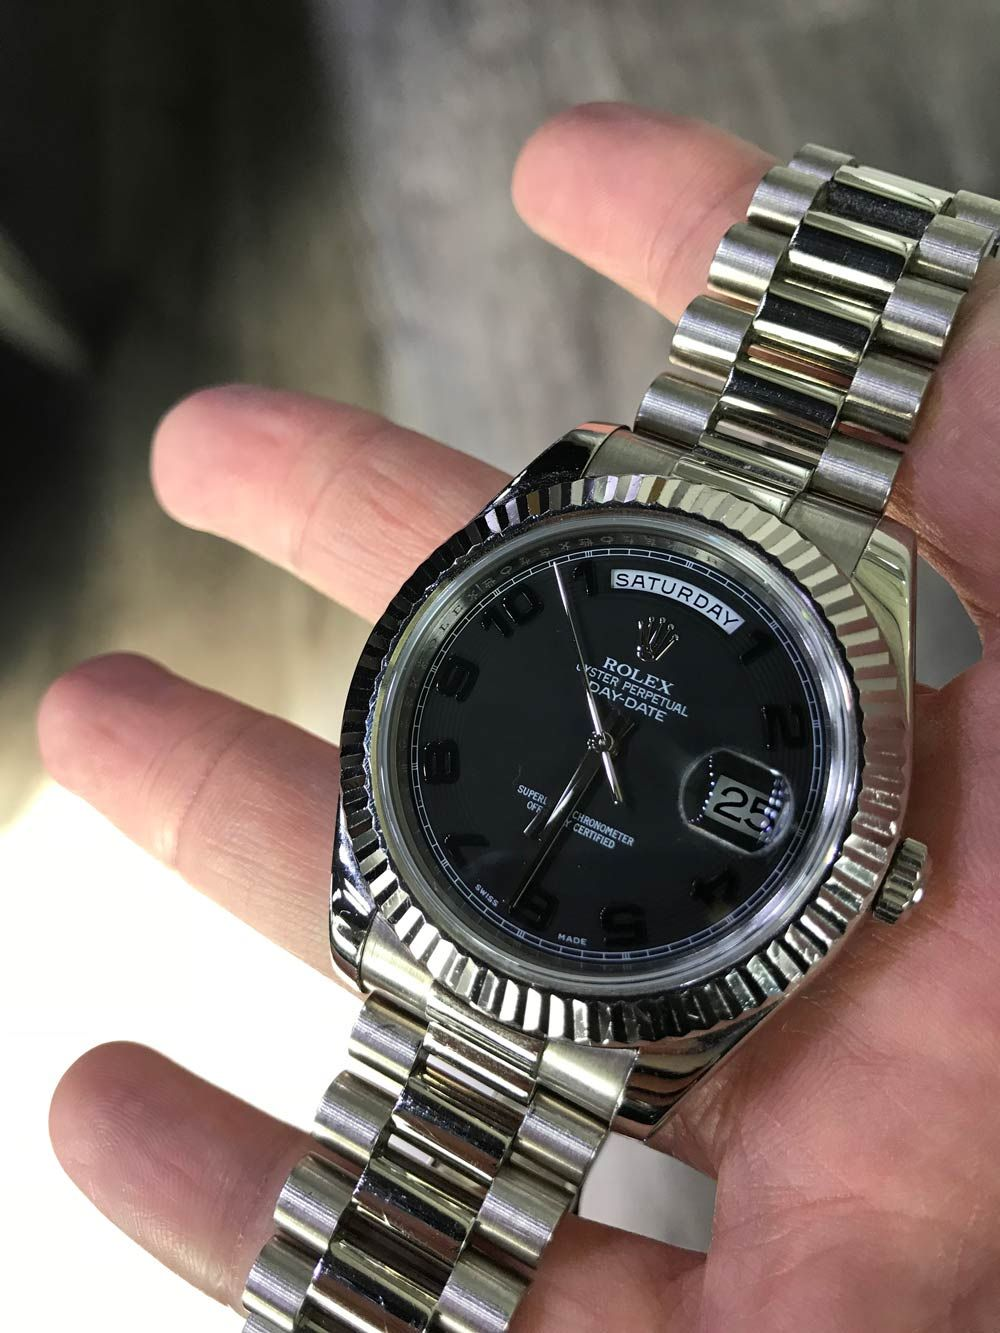 38d2be94a The Rolex President. 41mm, 18K white gold case and fluted bezel, black  concentric circle dial, black Arabic numerals, and President bracelet.